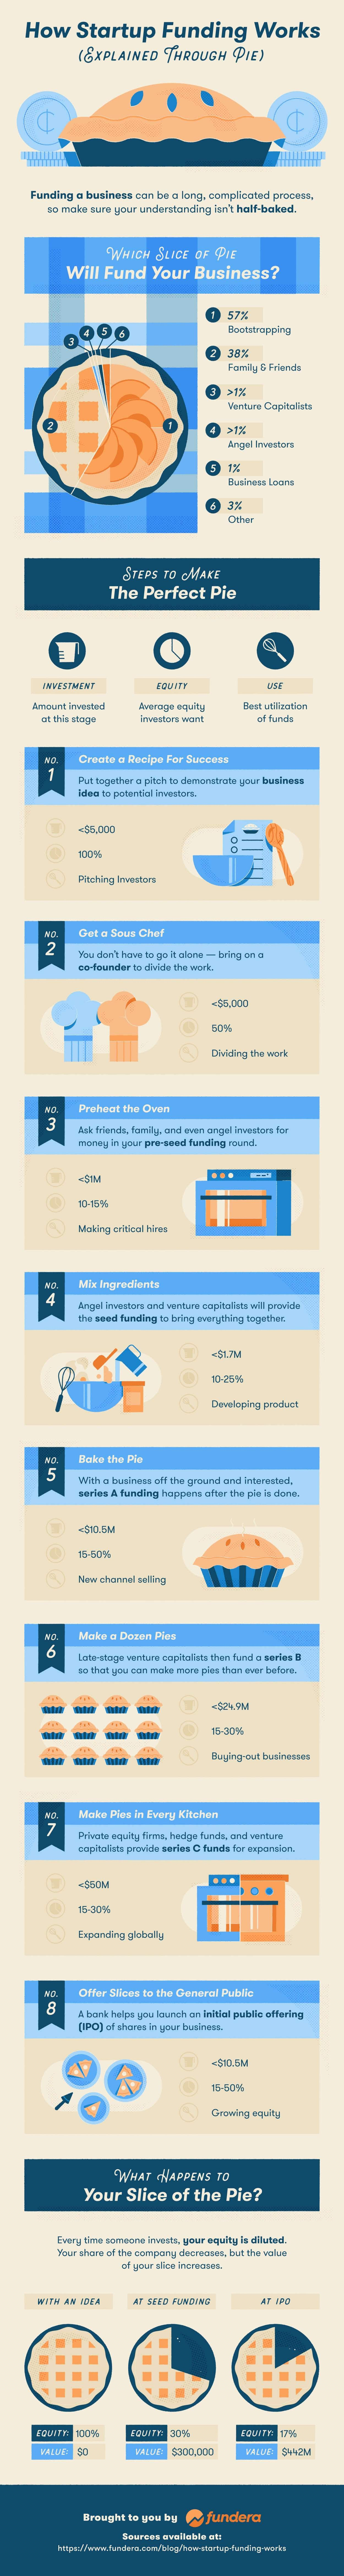 How Startup Funding Works #infographic